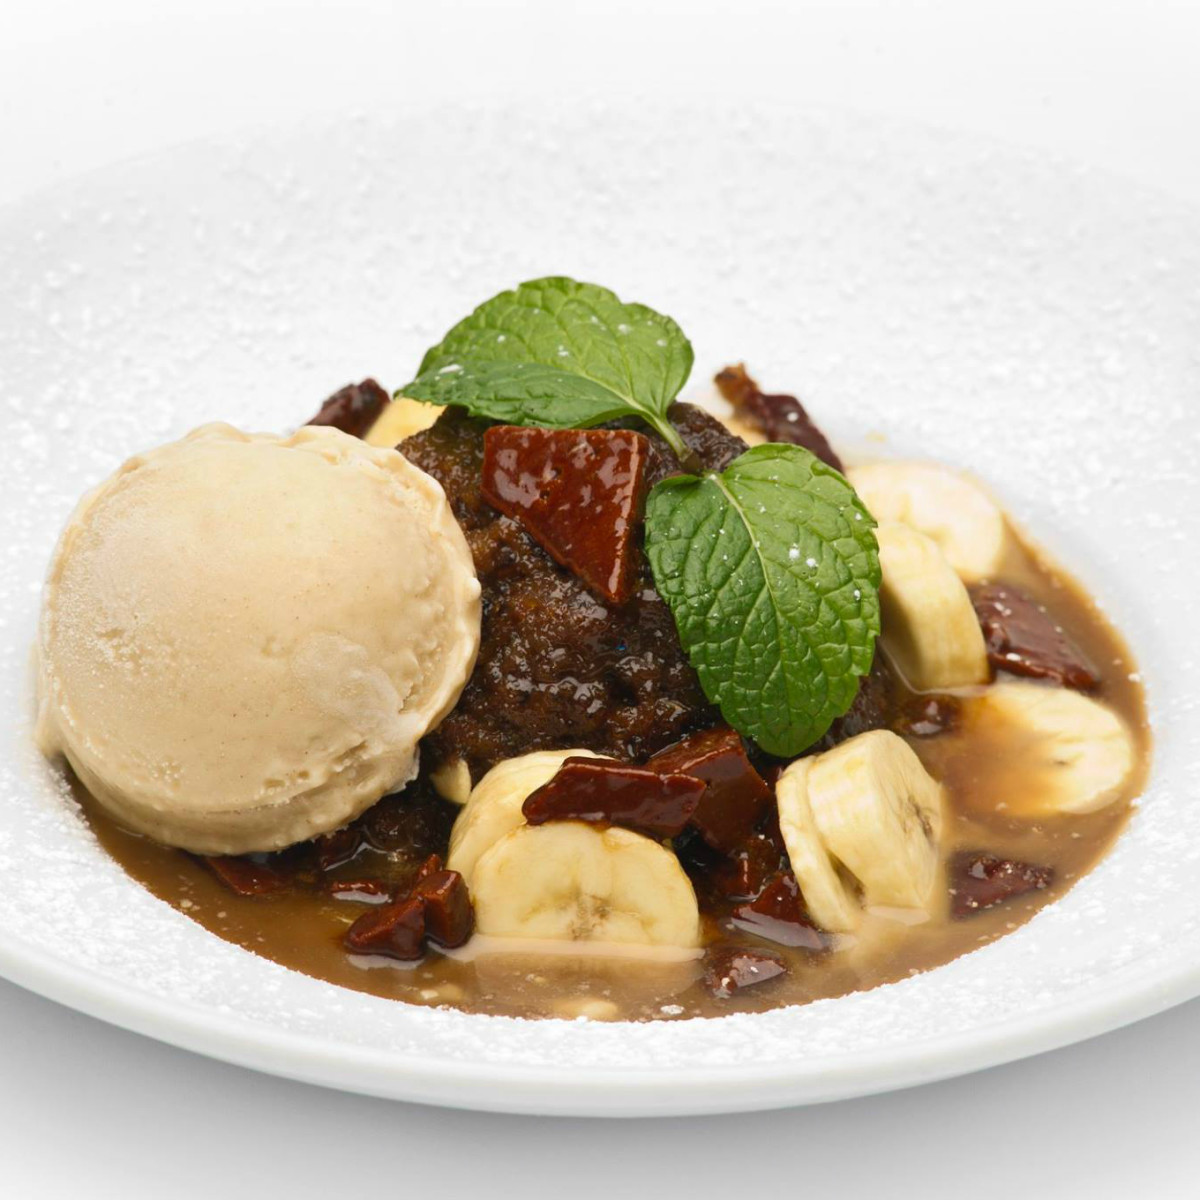 Paesanos toffee banana bread pudding dessert 2015